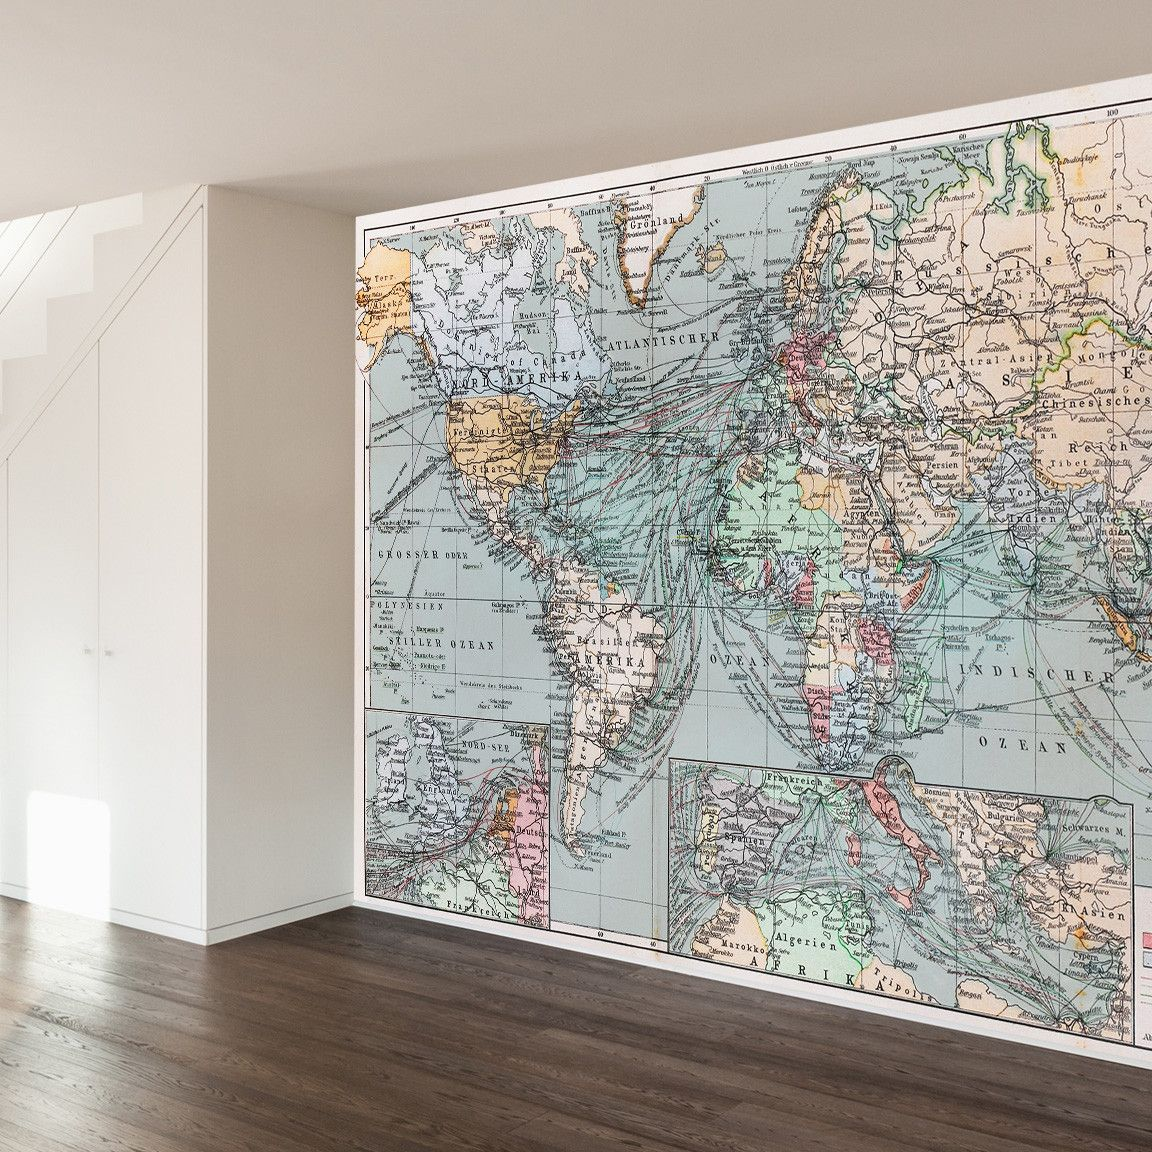 Vintage world map wall mural decal wallsneedlove buyable pins vintage world map wall mural decal wallsneedlove gumiabroncs Images